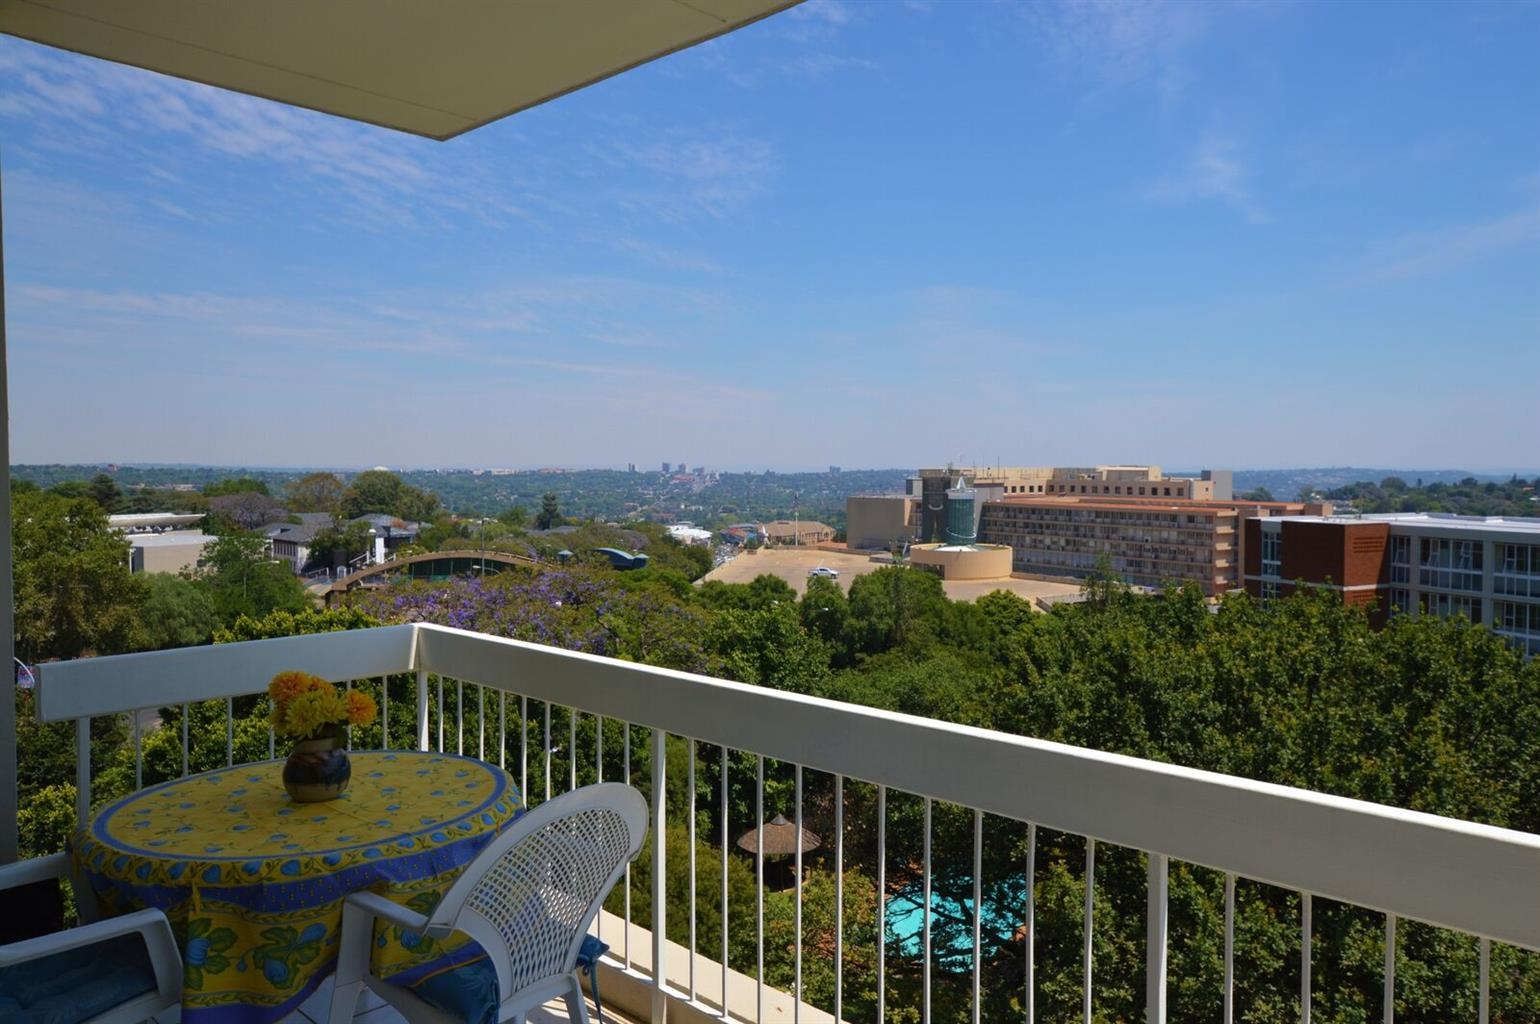 This apartment has it all = Location + View + Space + Security + Great Price!